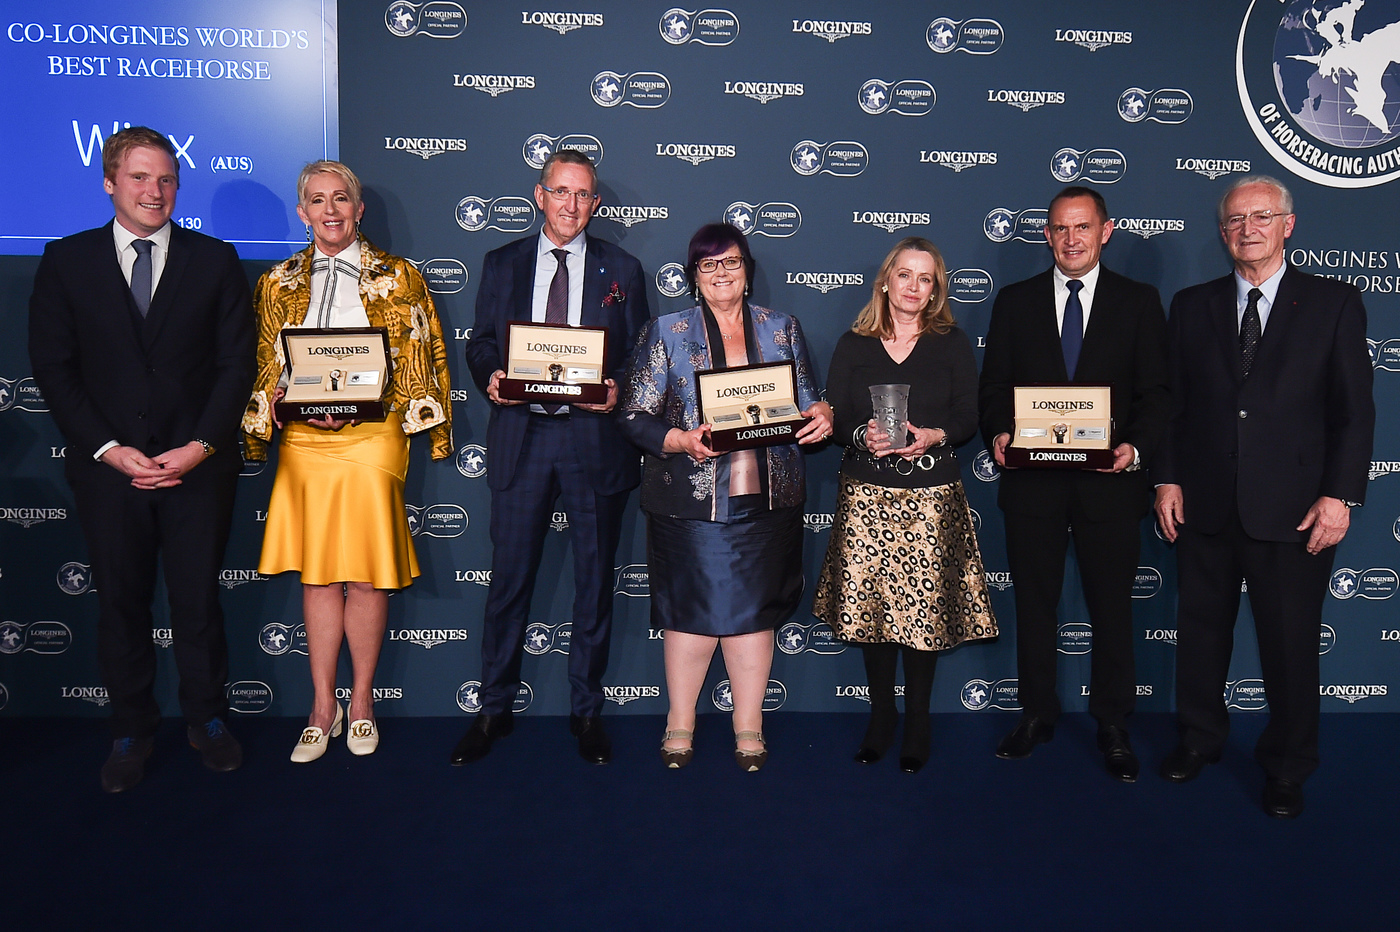 Longines Flat Racing Event: Winx and Cracksman named the 2018 Longines World's Best Racehorses, Qatar Prix de l'Arc de Triomphe crowned Longines World's Best Horse Race for the third time 10